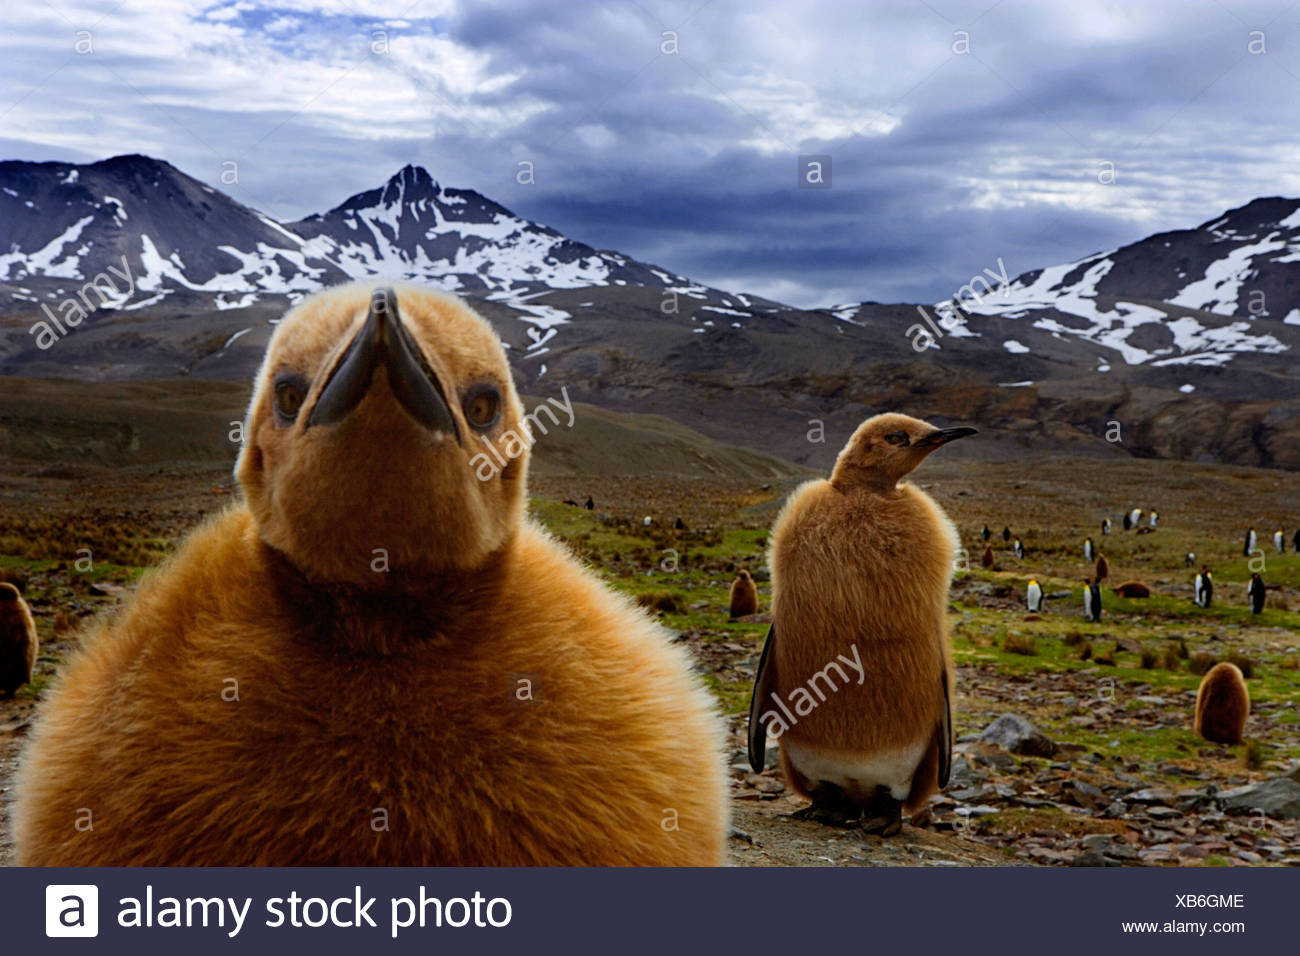 King Penguin chicks, South Georgia Island, UK - Stock Image